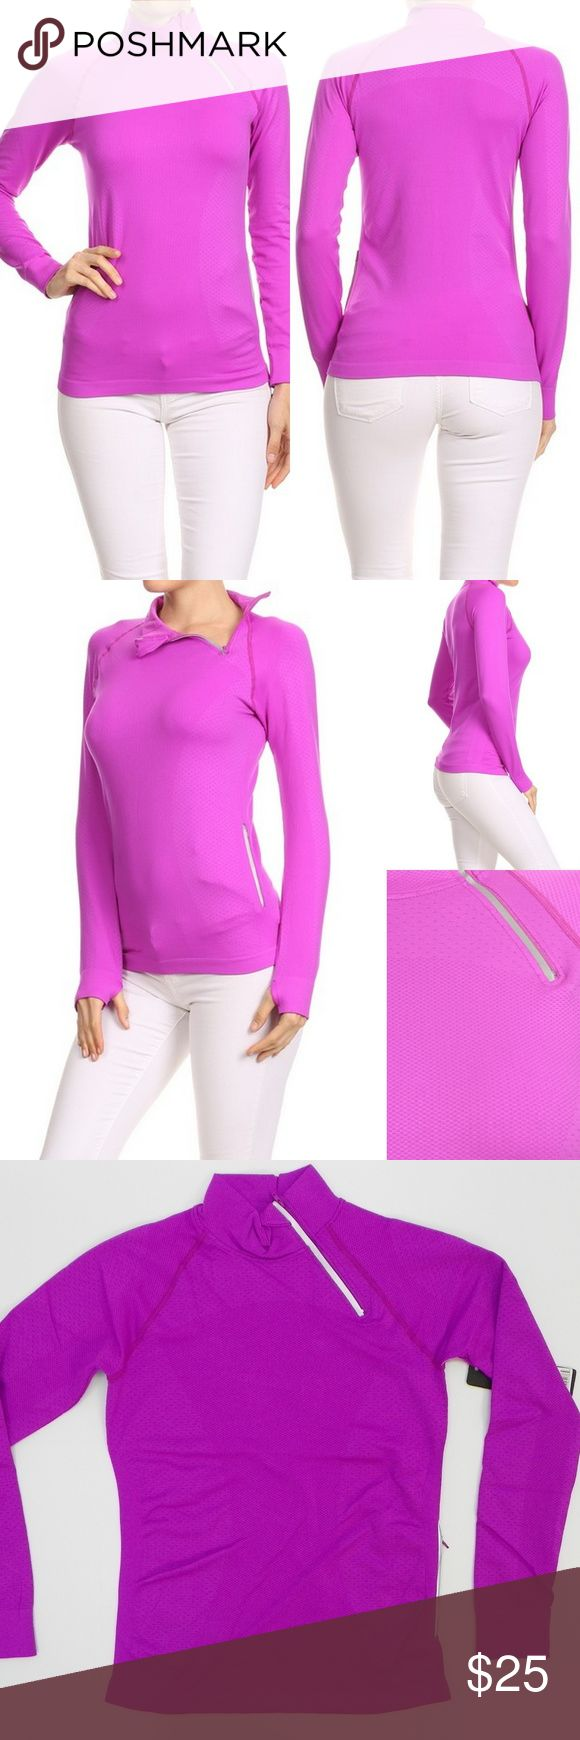 "Fitness 1/4 Zip Running Pullover Jacket Top Purple Ladies Women's Fashion Fitness Workout Activewear 1/4 Zip Mock Neck Running Pullover Jacket  *Side Zipper Pocket *Very Stretchy (adds 3"") *Long Sleeves with Thumb holes  Color:  Purple Material:  95% Nylon 5% Spandex Size : S/M, M/L  Flat Length (shoulder to hem)	S/M - 23""	M/L - 23.5"" Flat Side (armpit to hem)	S/M - 14.5""	M/L - 15.5"" Flat Sleeve (middle of neck to cuff)	S/M - 28.5""	M/L - 29""  Bust 	S/M - 31""	M/L - 32"" Waist at hem	S/M…"